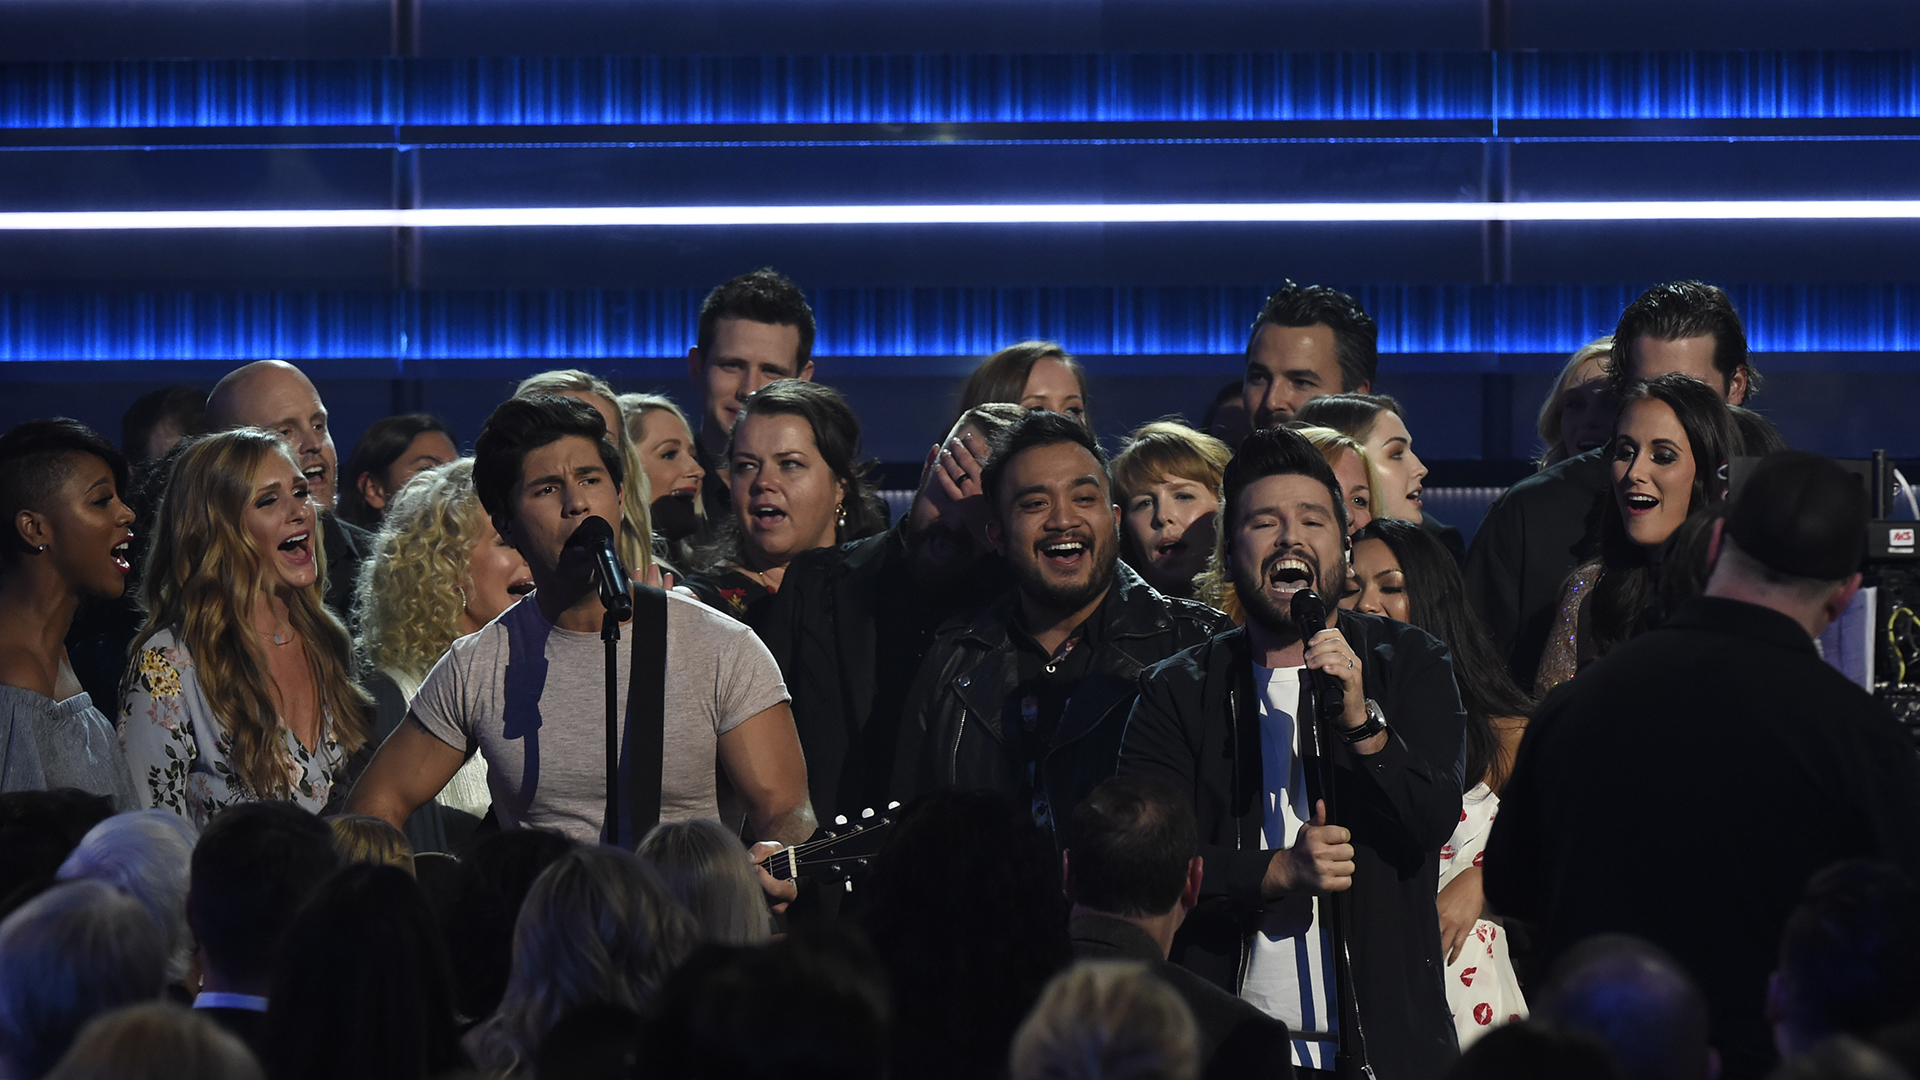 Dan + Shay perform a sing-along acoustic version of their hit